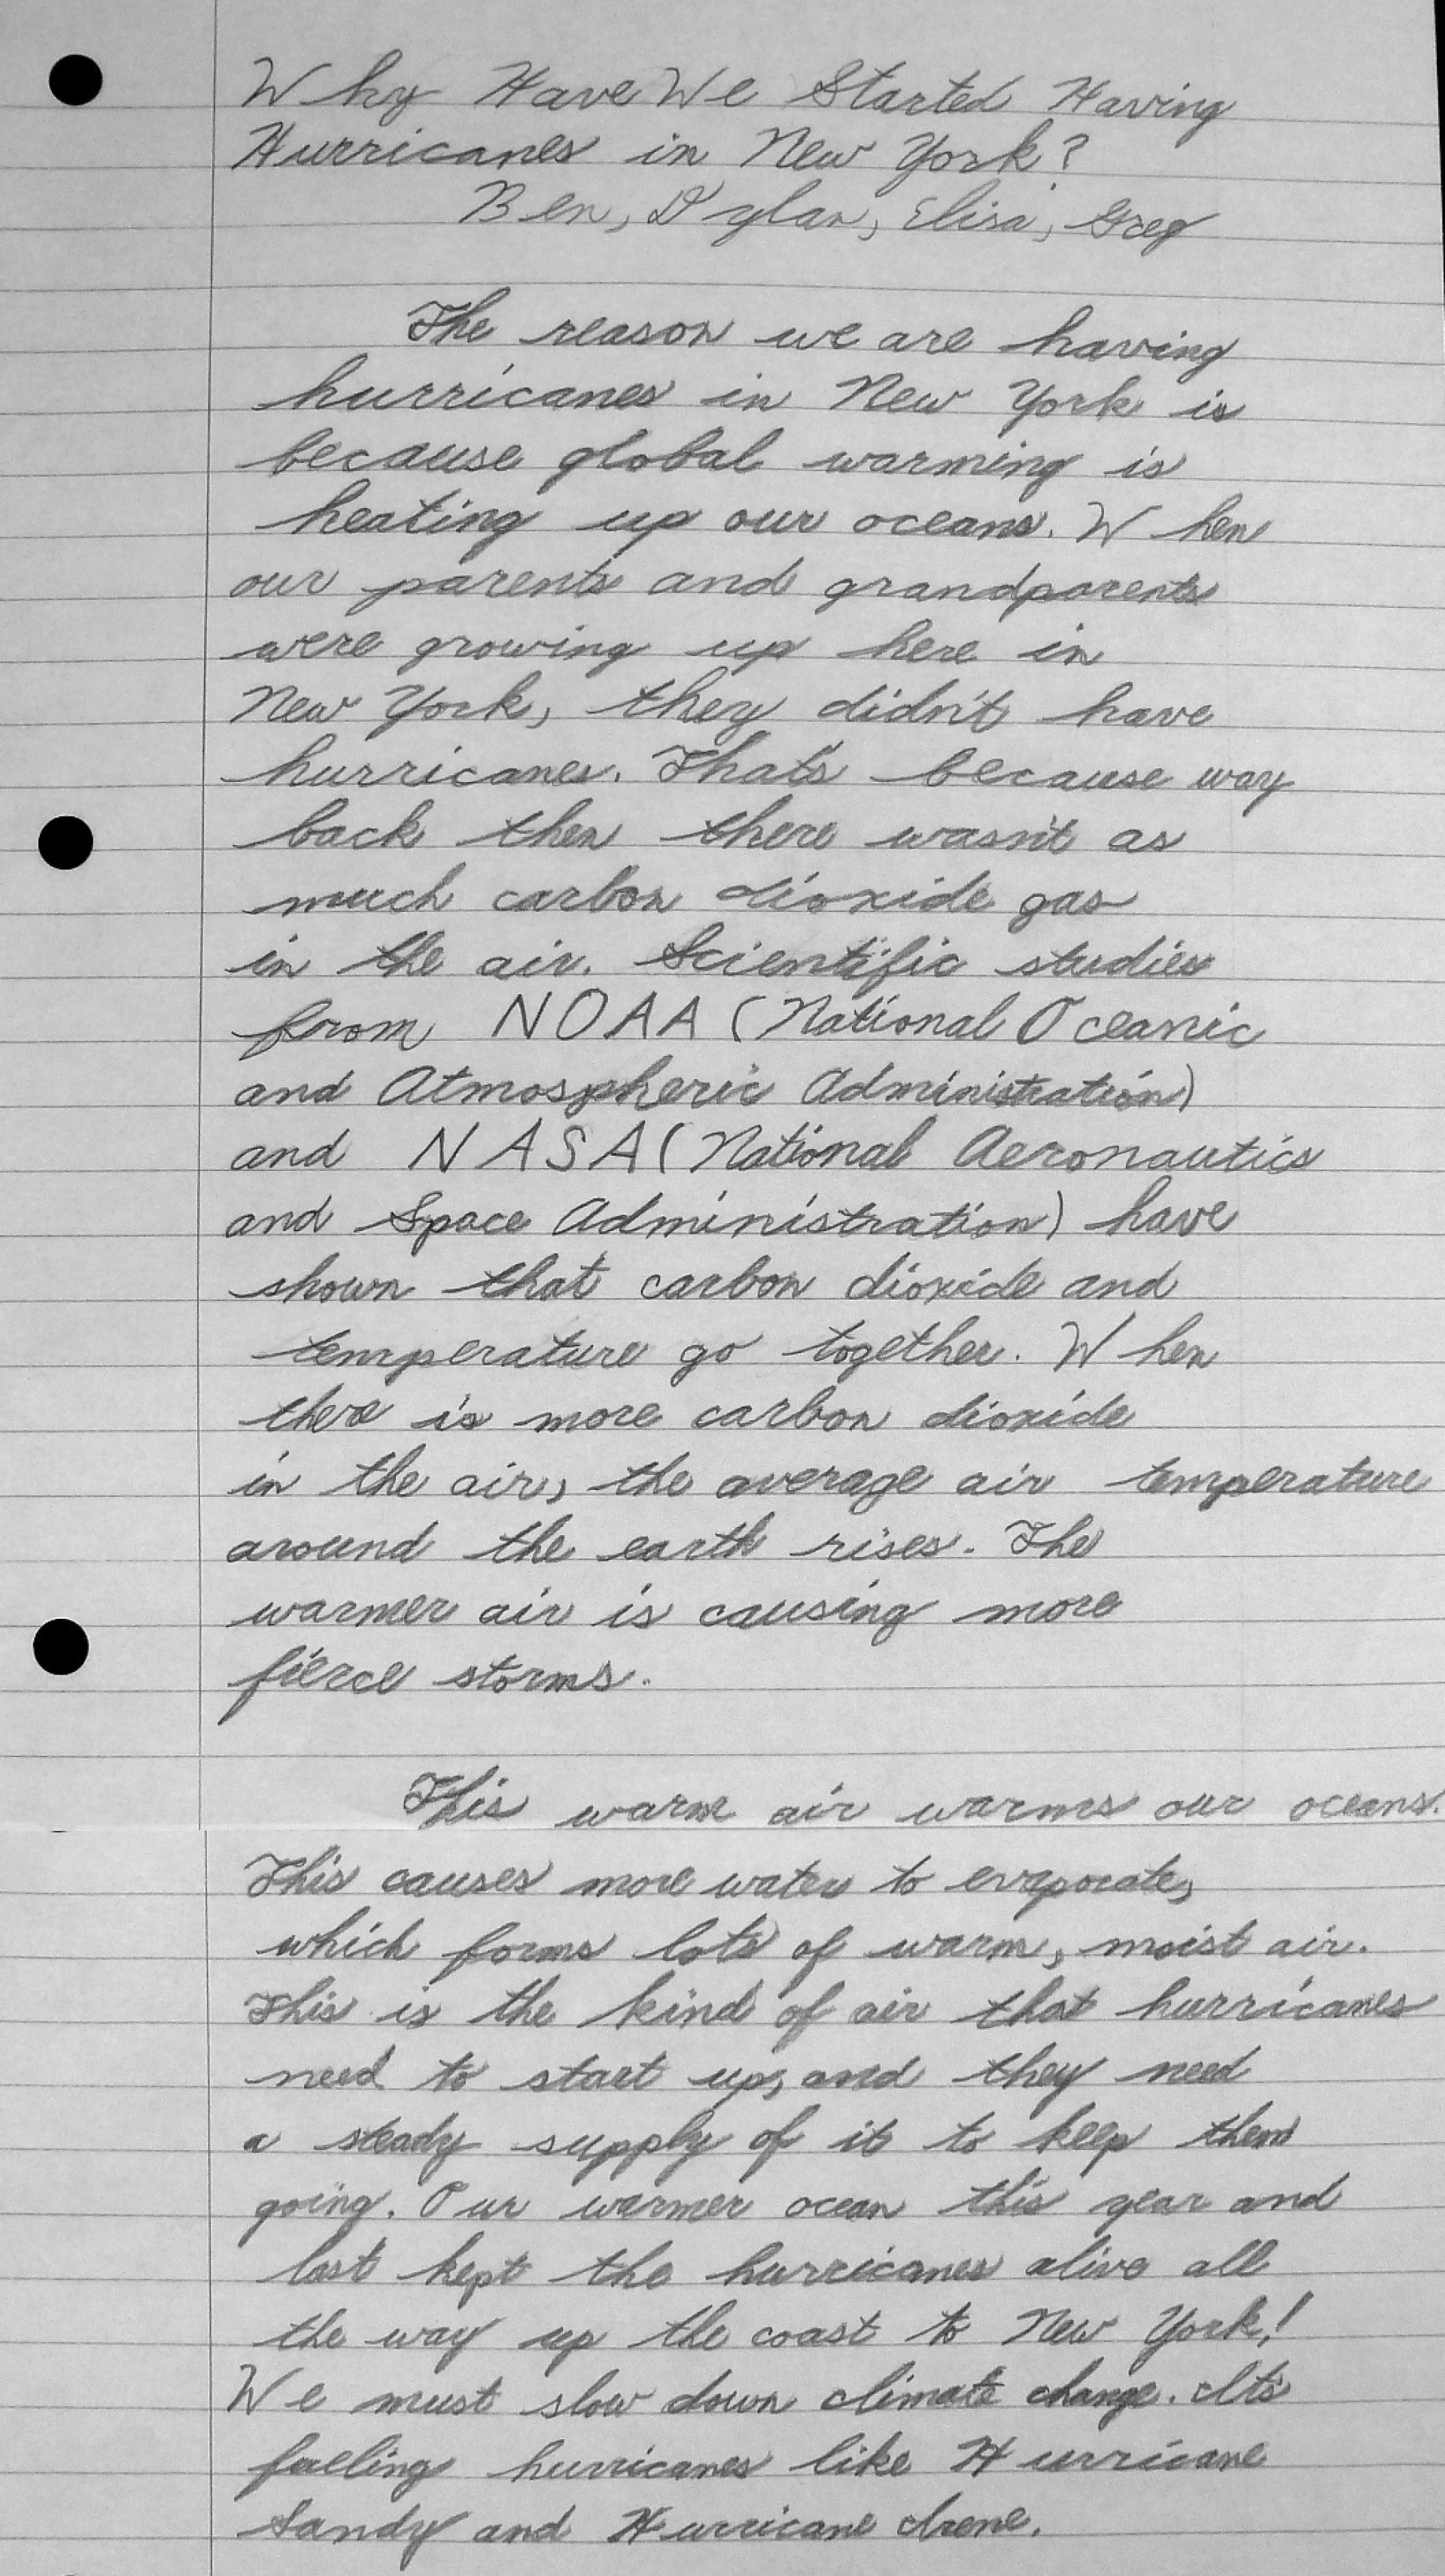 009 Global Warming Research Paper Conclusion Whyhurricanes Full Outstanding 1920